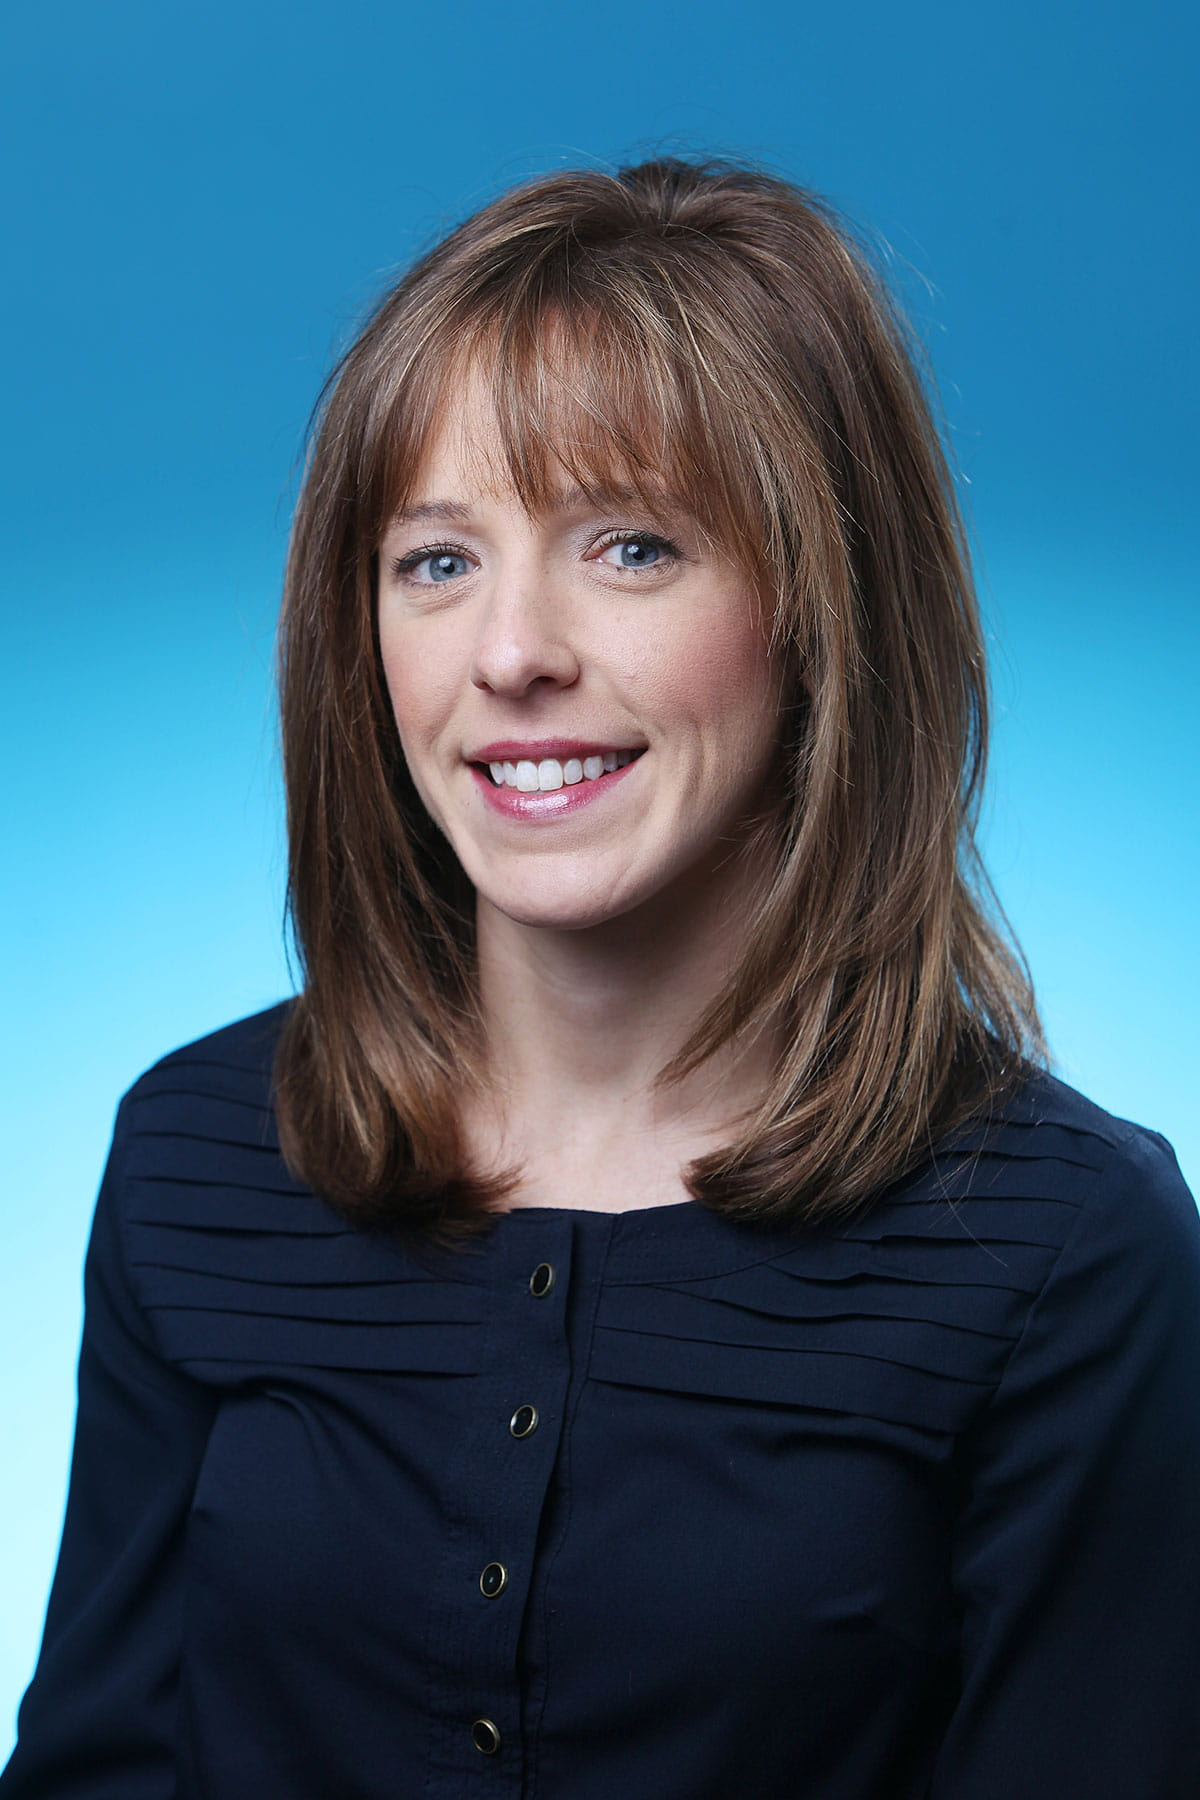 Michelle C. Cash, MSN, APRN, CNP